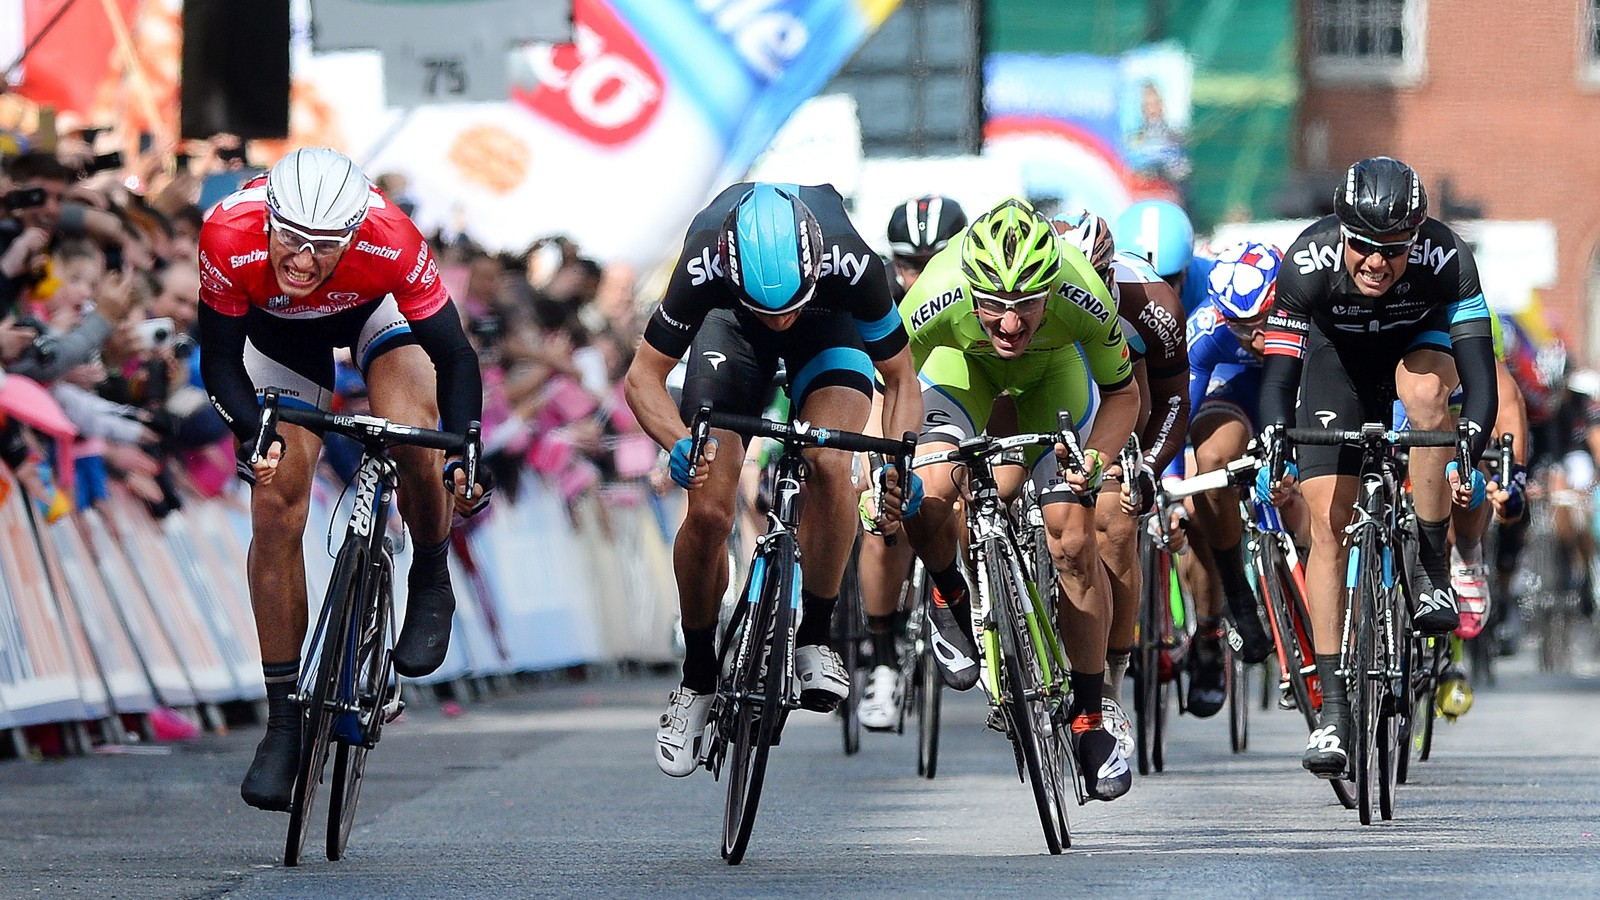 Marcel Kittel (in red) won stage 3 of the 2014 Giro d'Italia